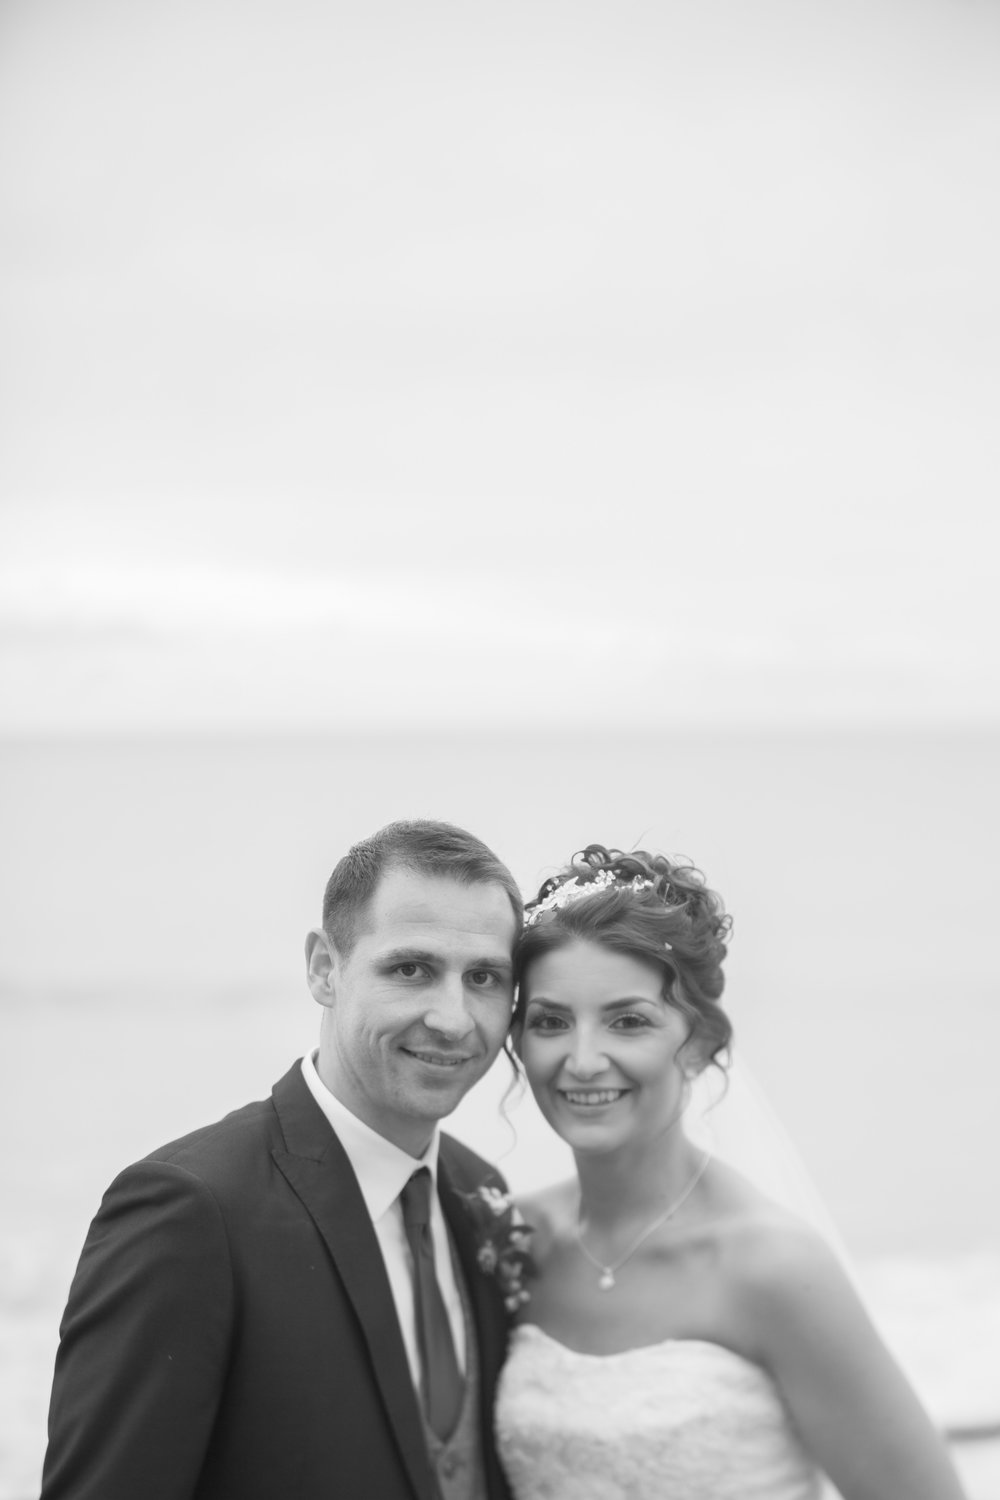 Laura & Darren, The Spa Hotel, Saltburn, 17_11_17_240.jpg